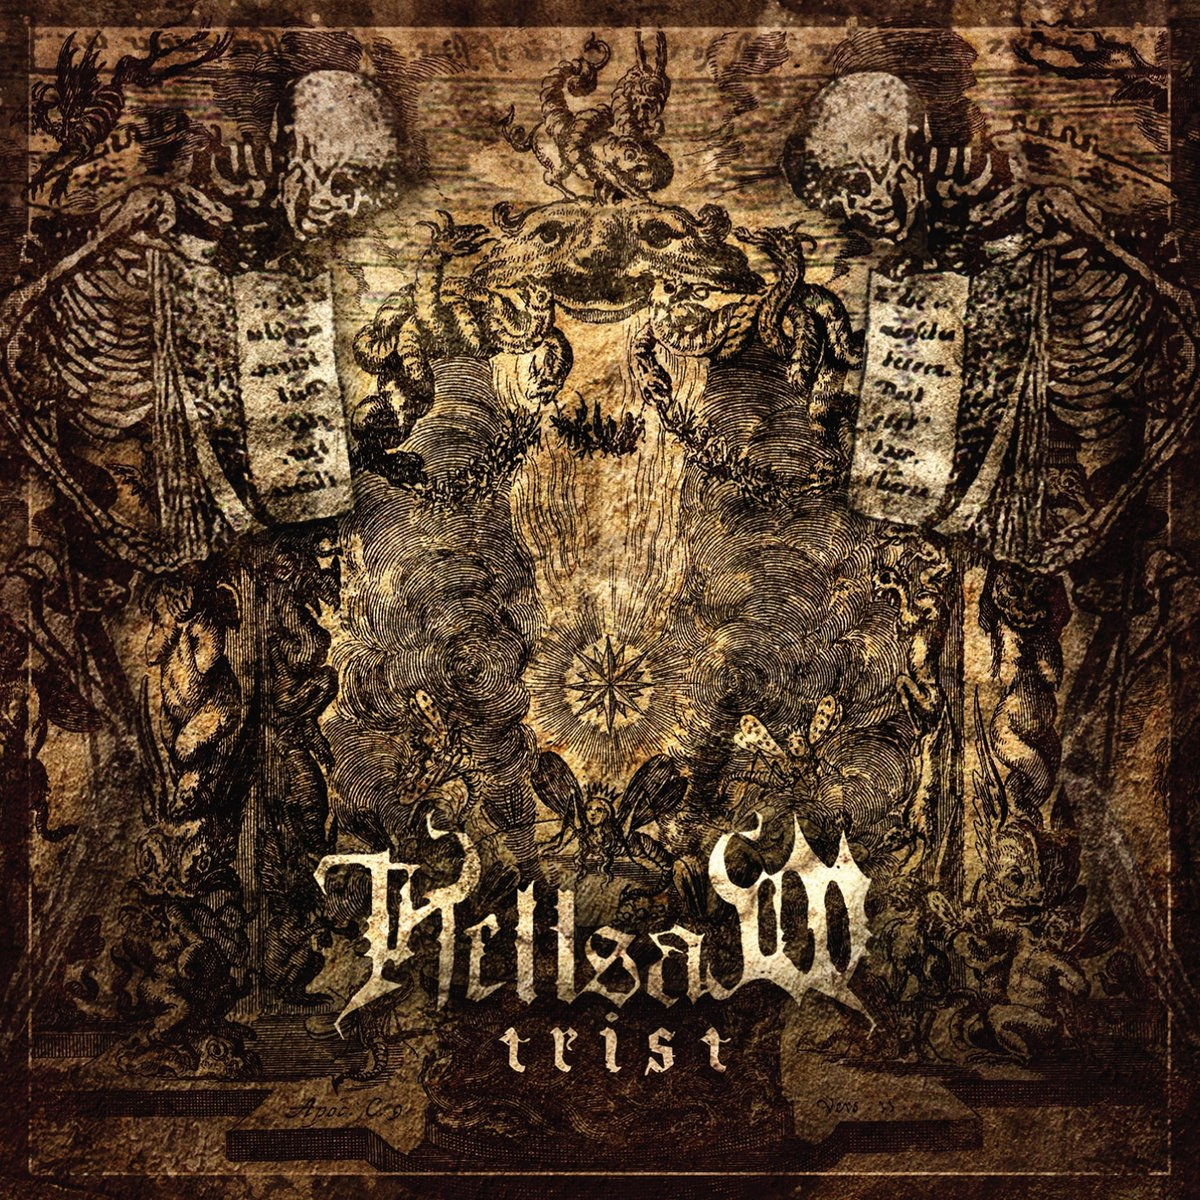 Review for Hellsaw - Trist